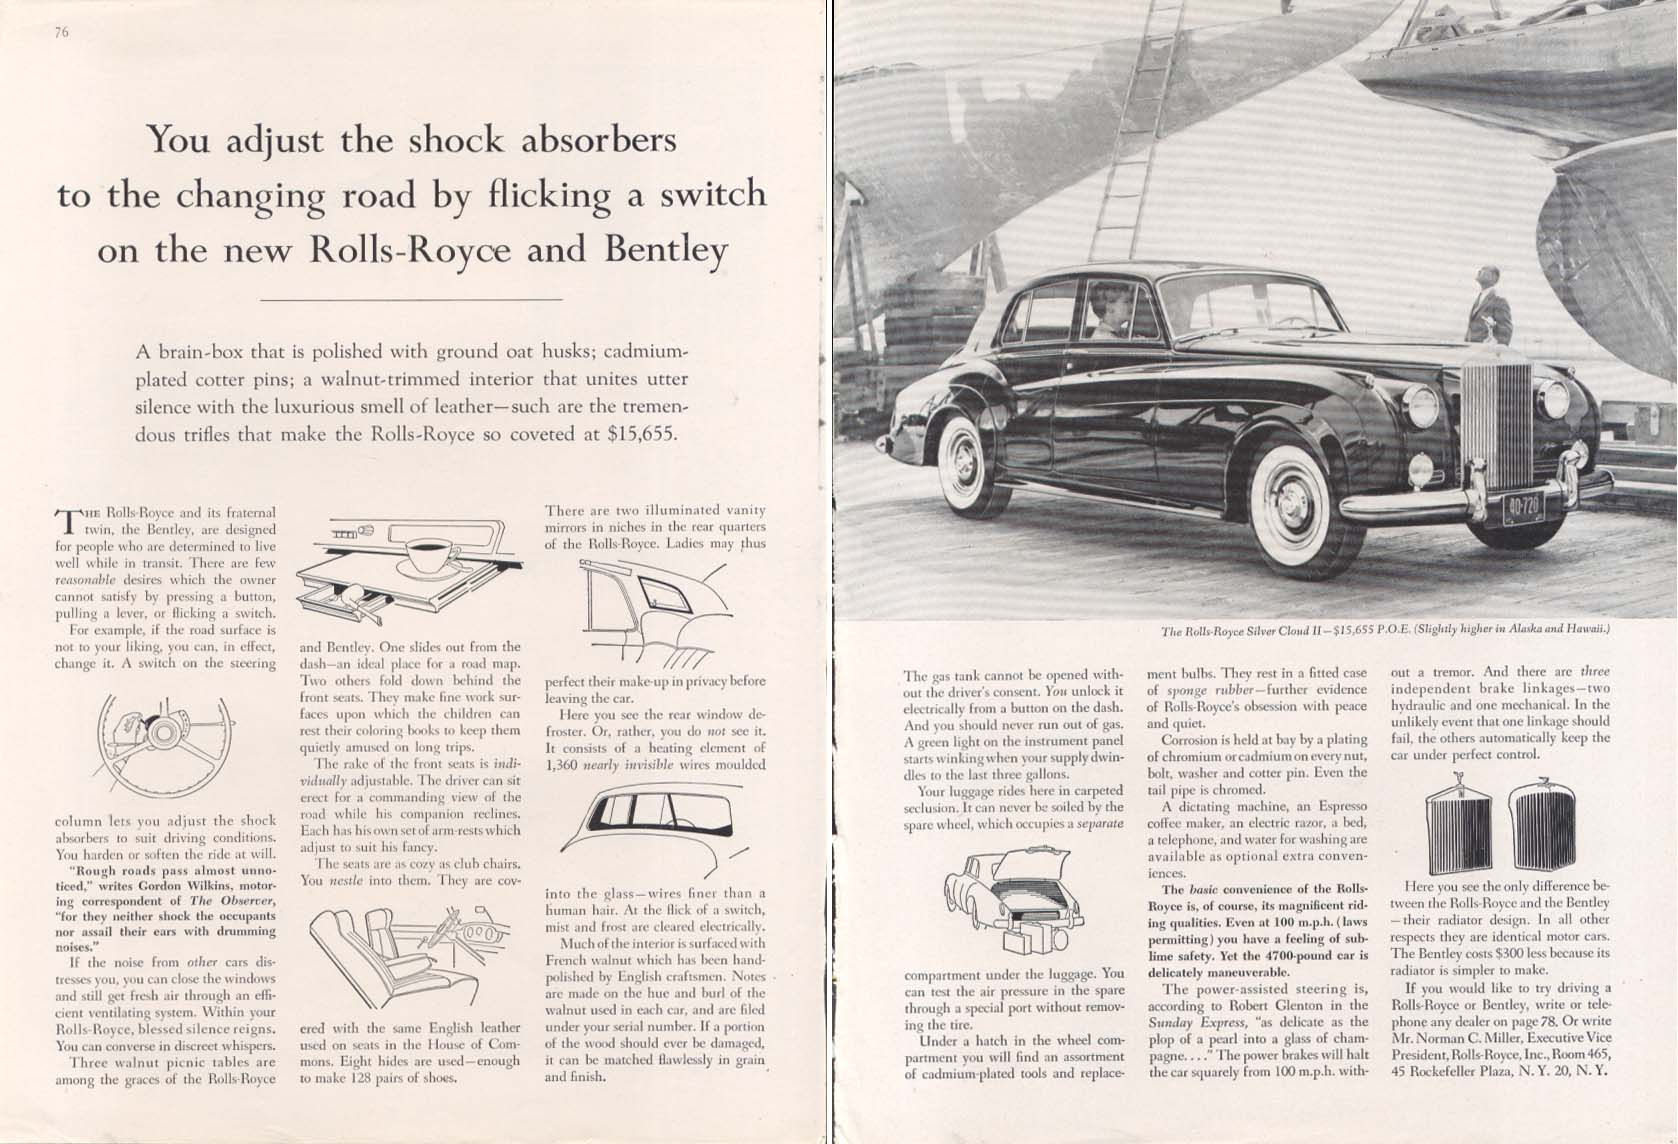 Adjust shock absorbers by flicking Rolls-Royce ad 1962